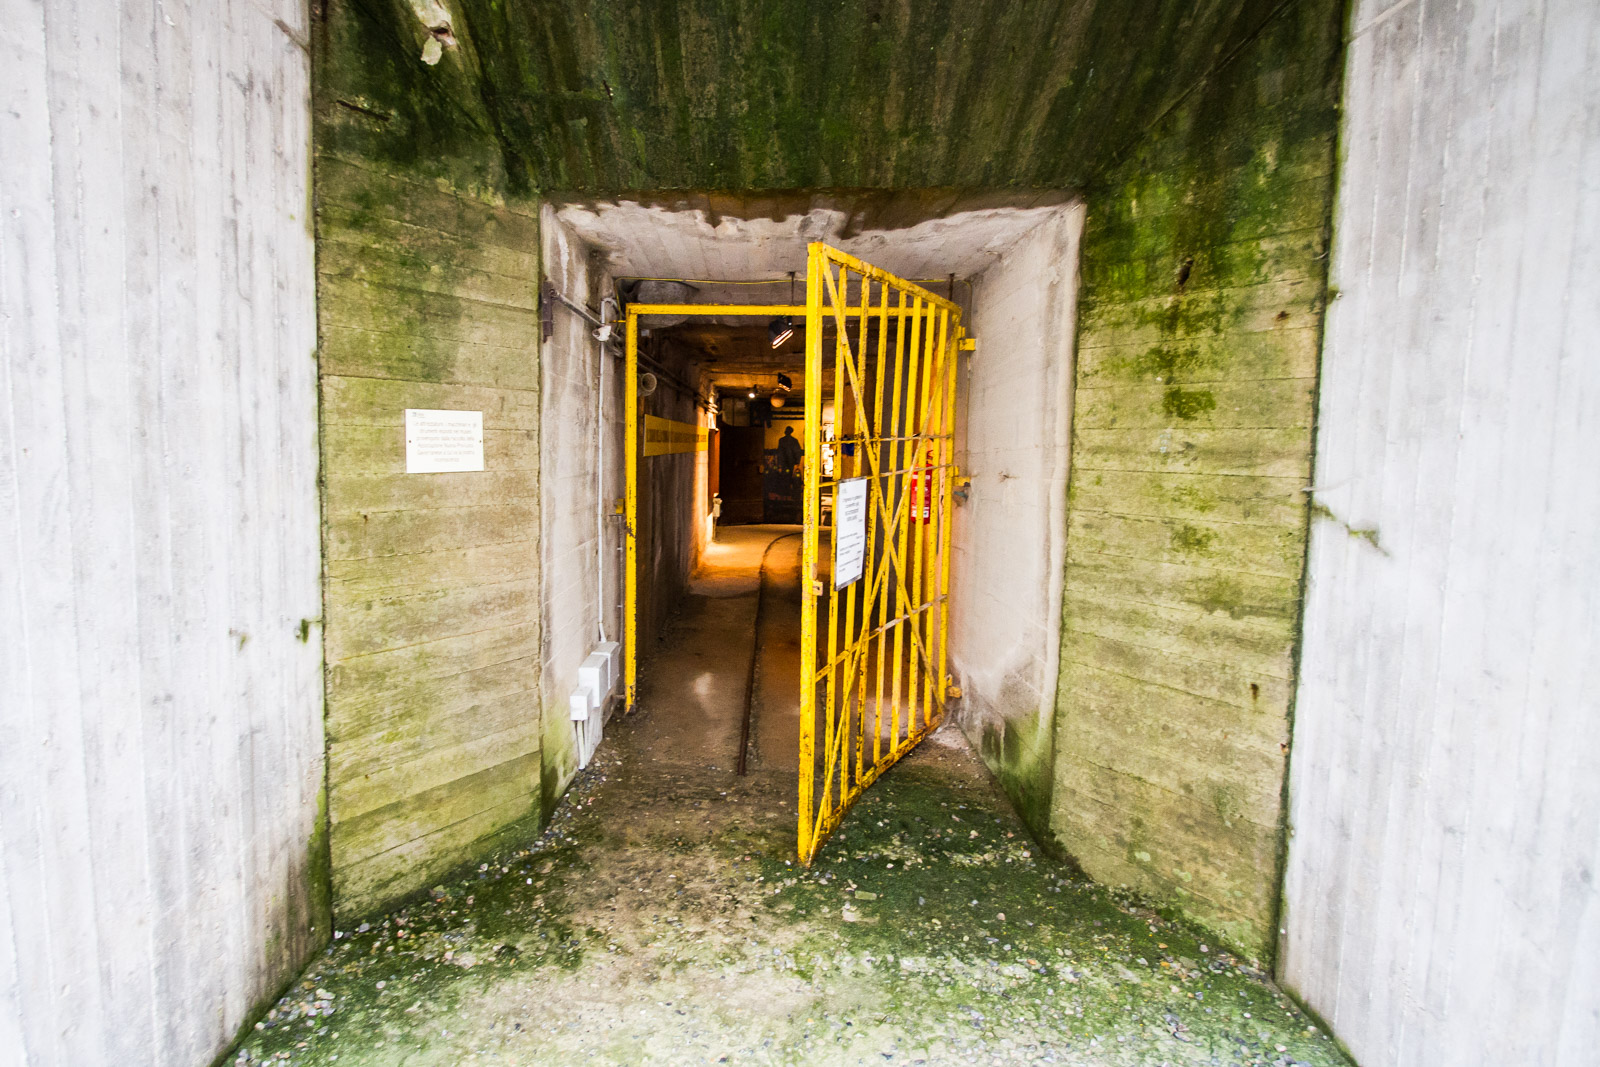 The mine entrance.